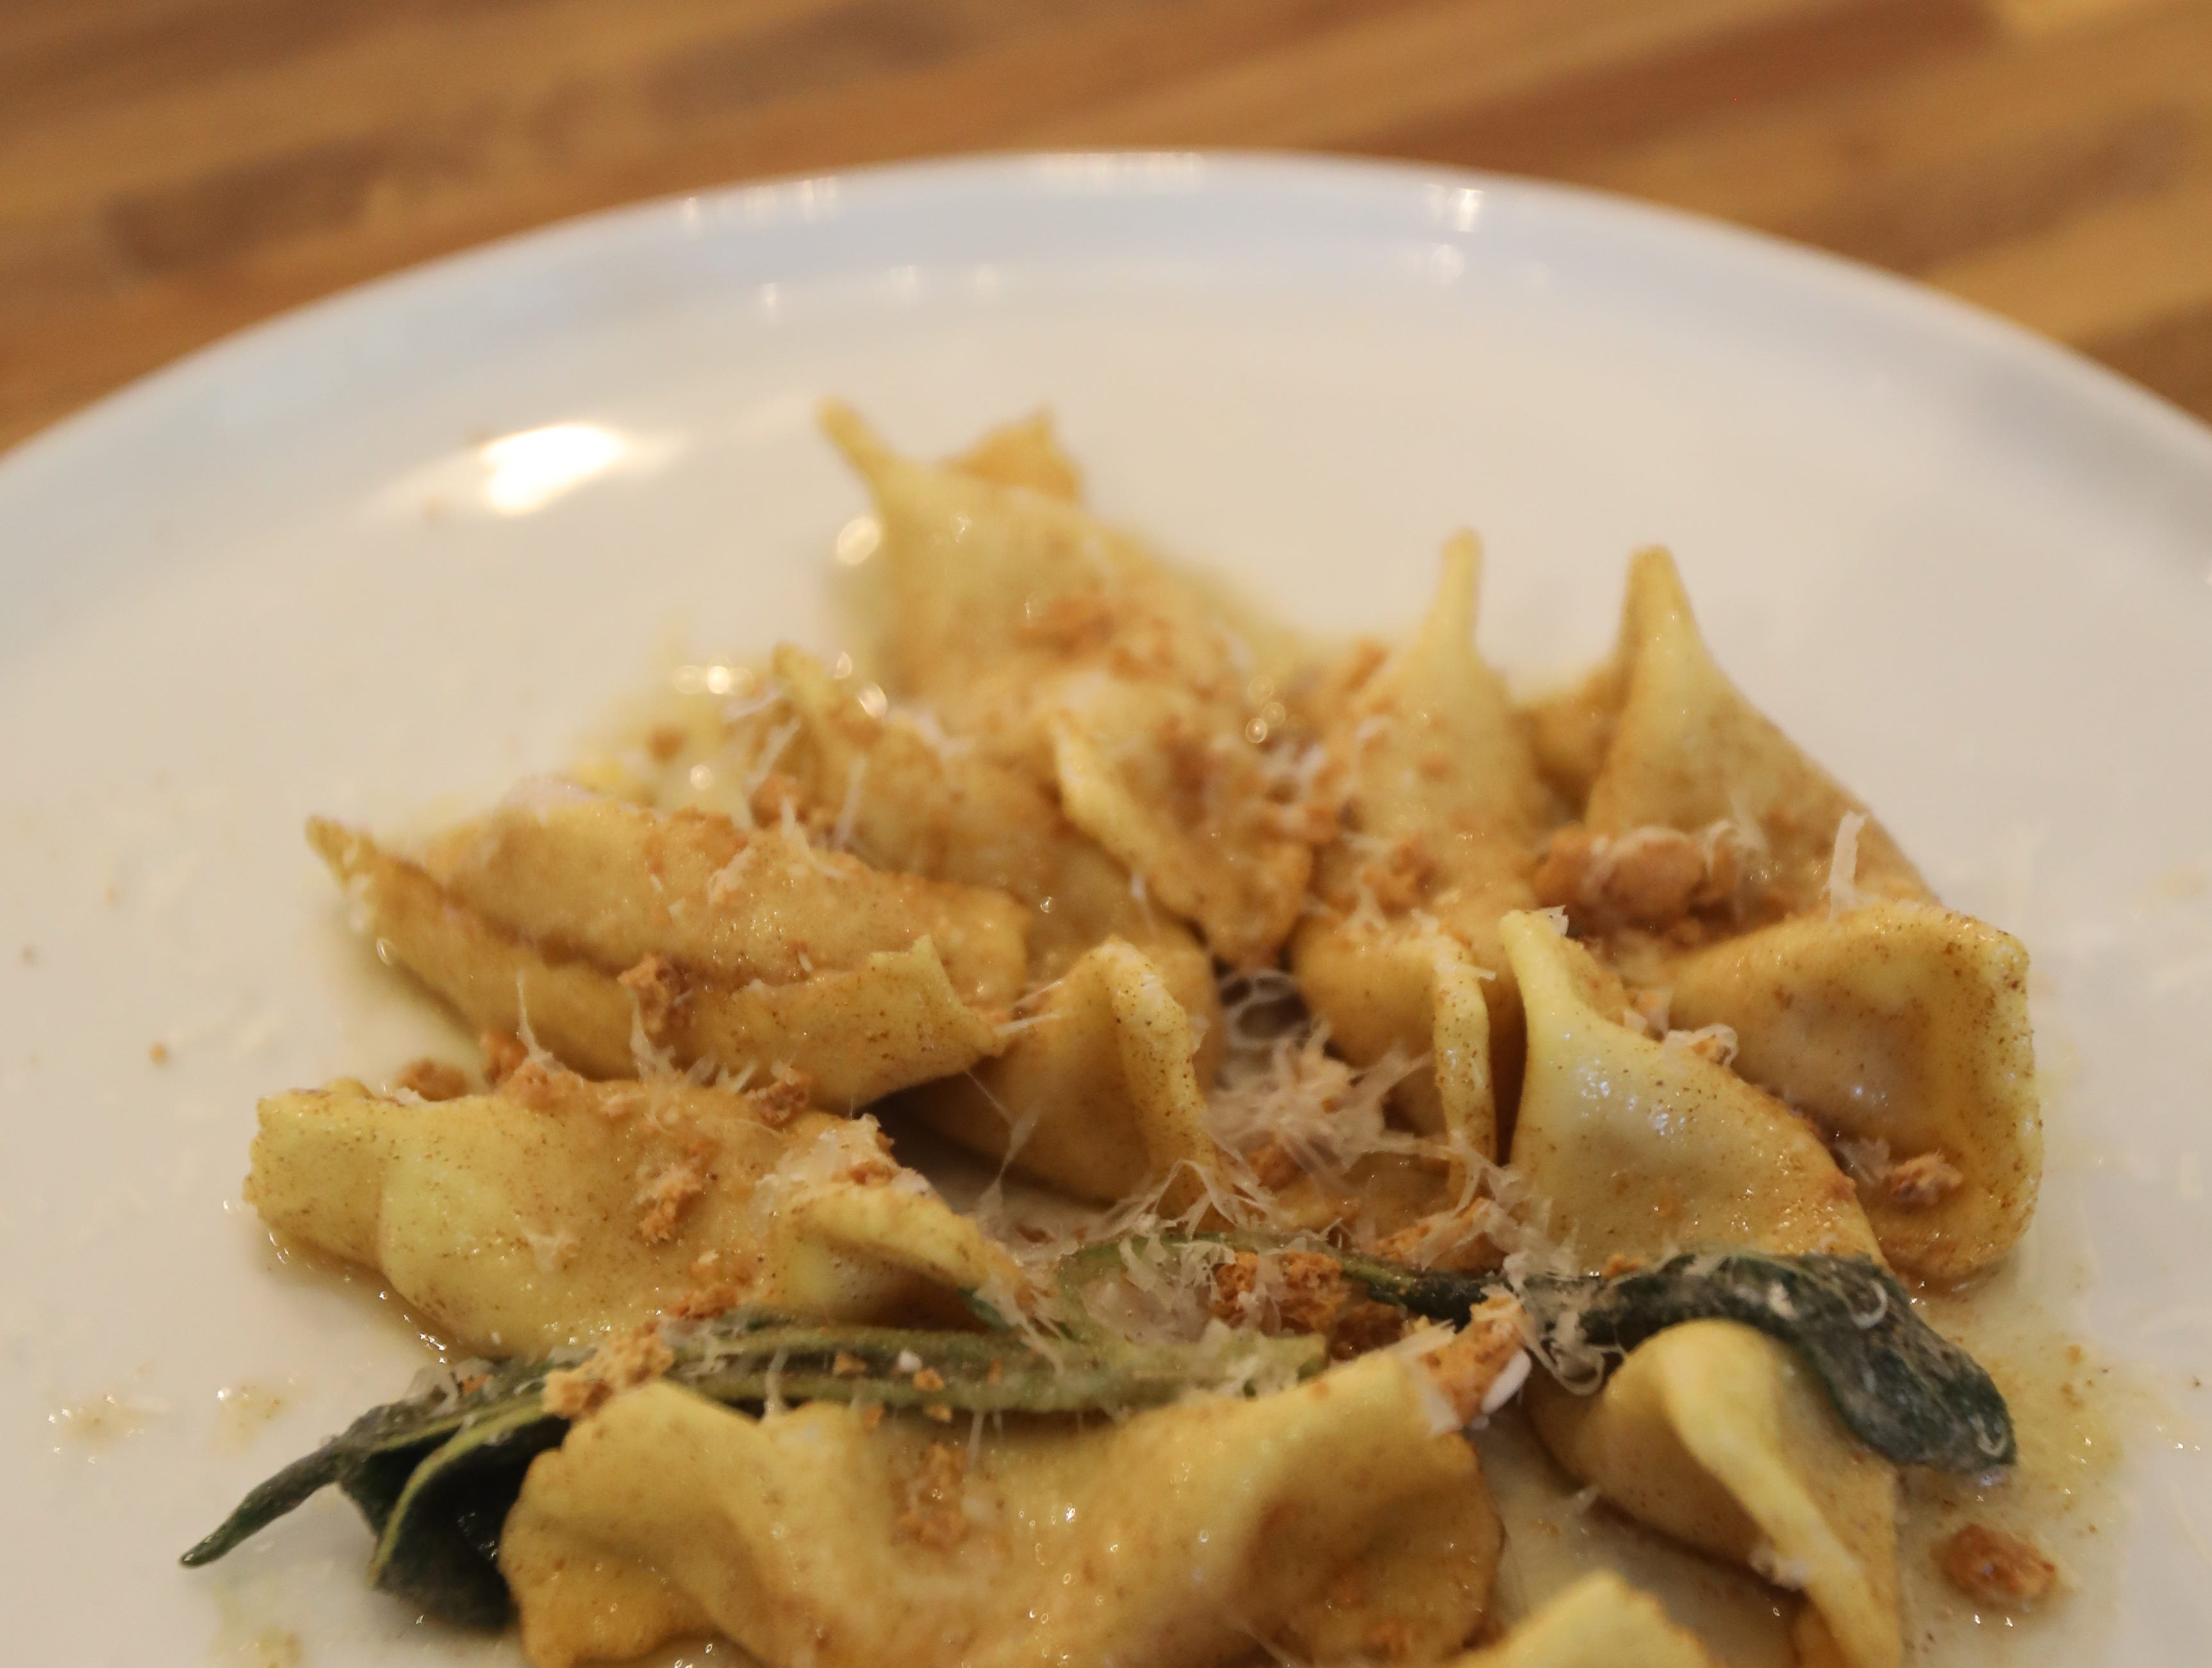 Pumpkin scarpinocc is a dish made at DPNB Pasta & Provisions in Nyack on Jan. 31, 2019.